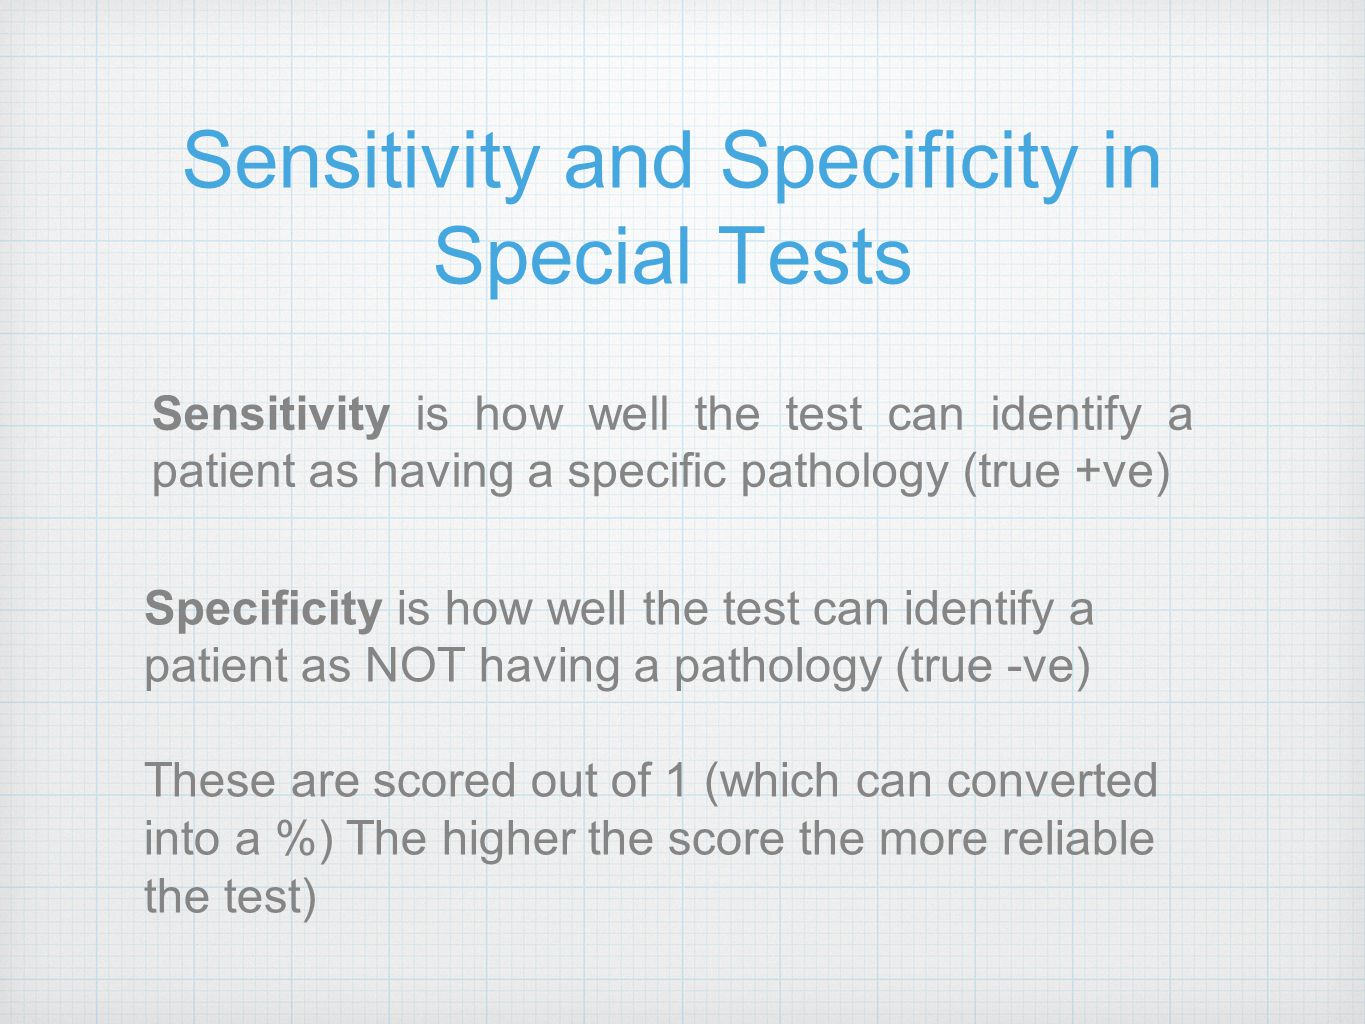 Sensitivity and Specificity in Special Tests